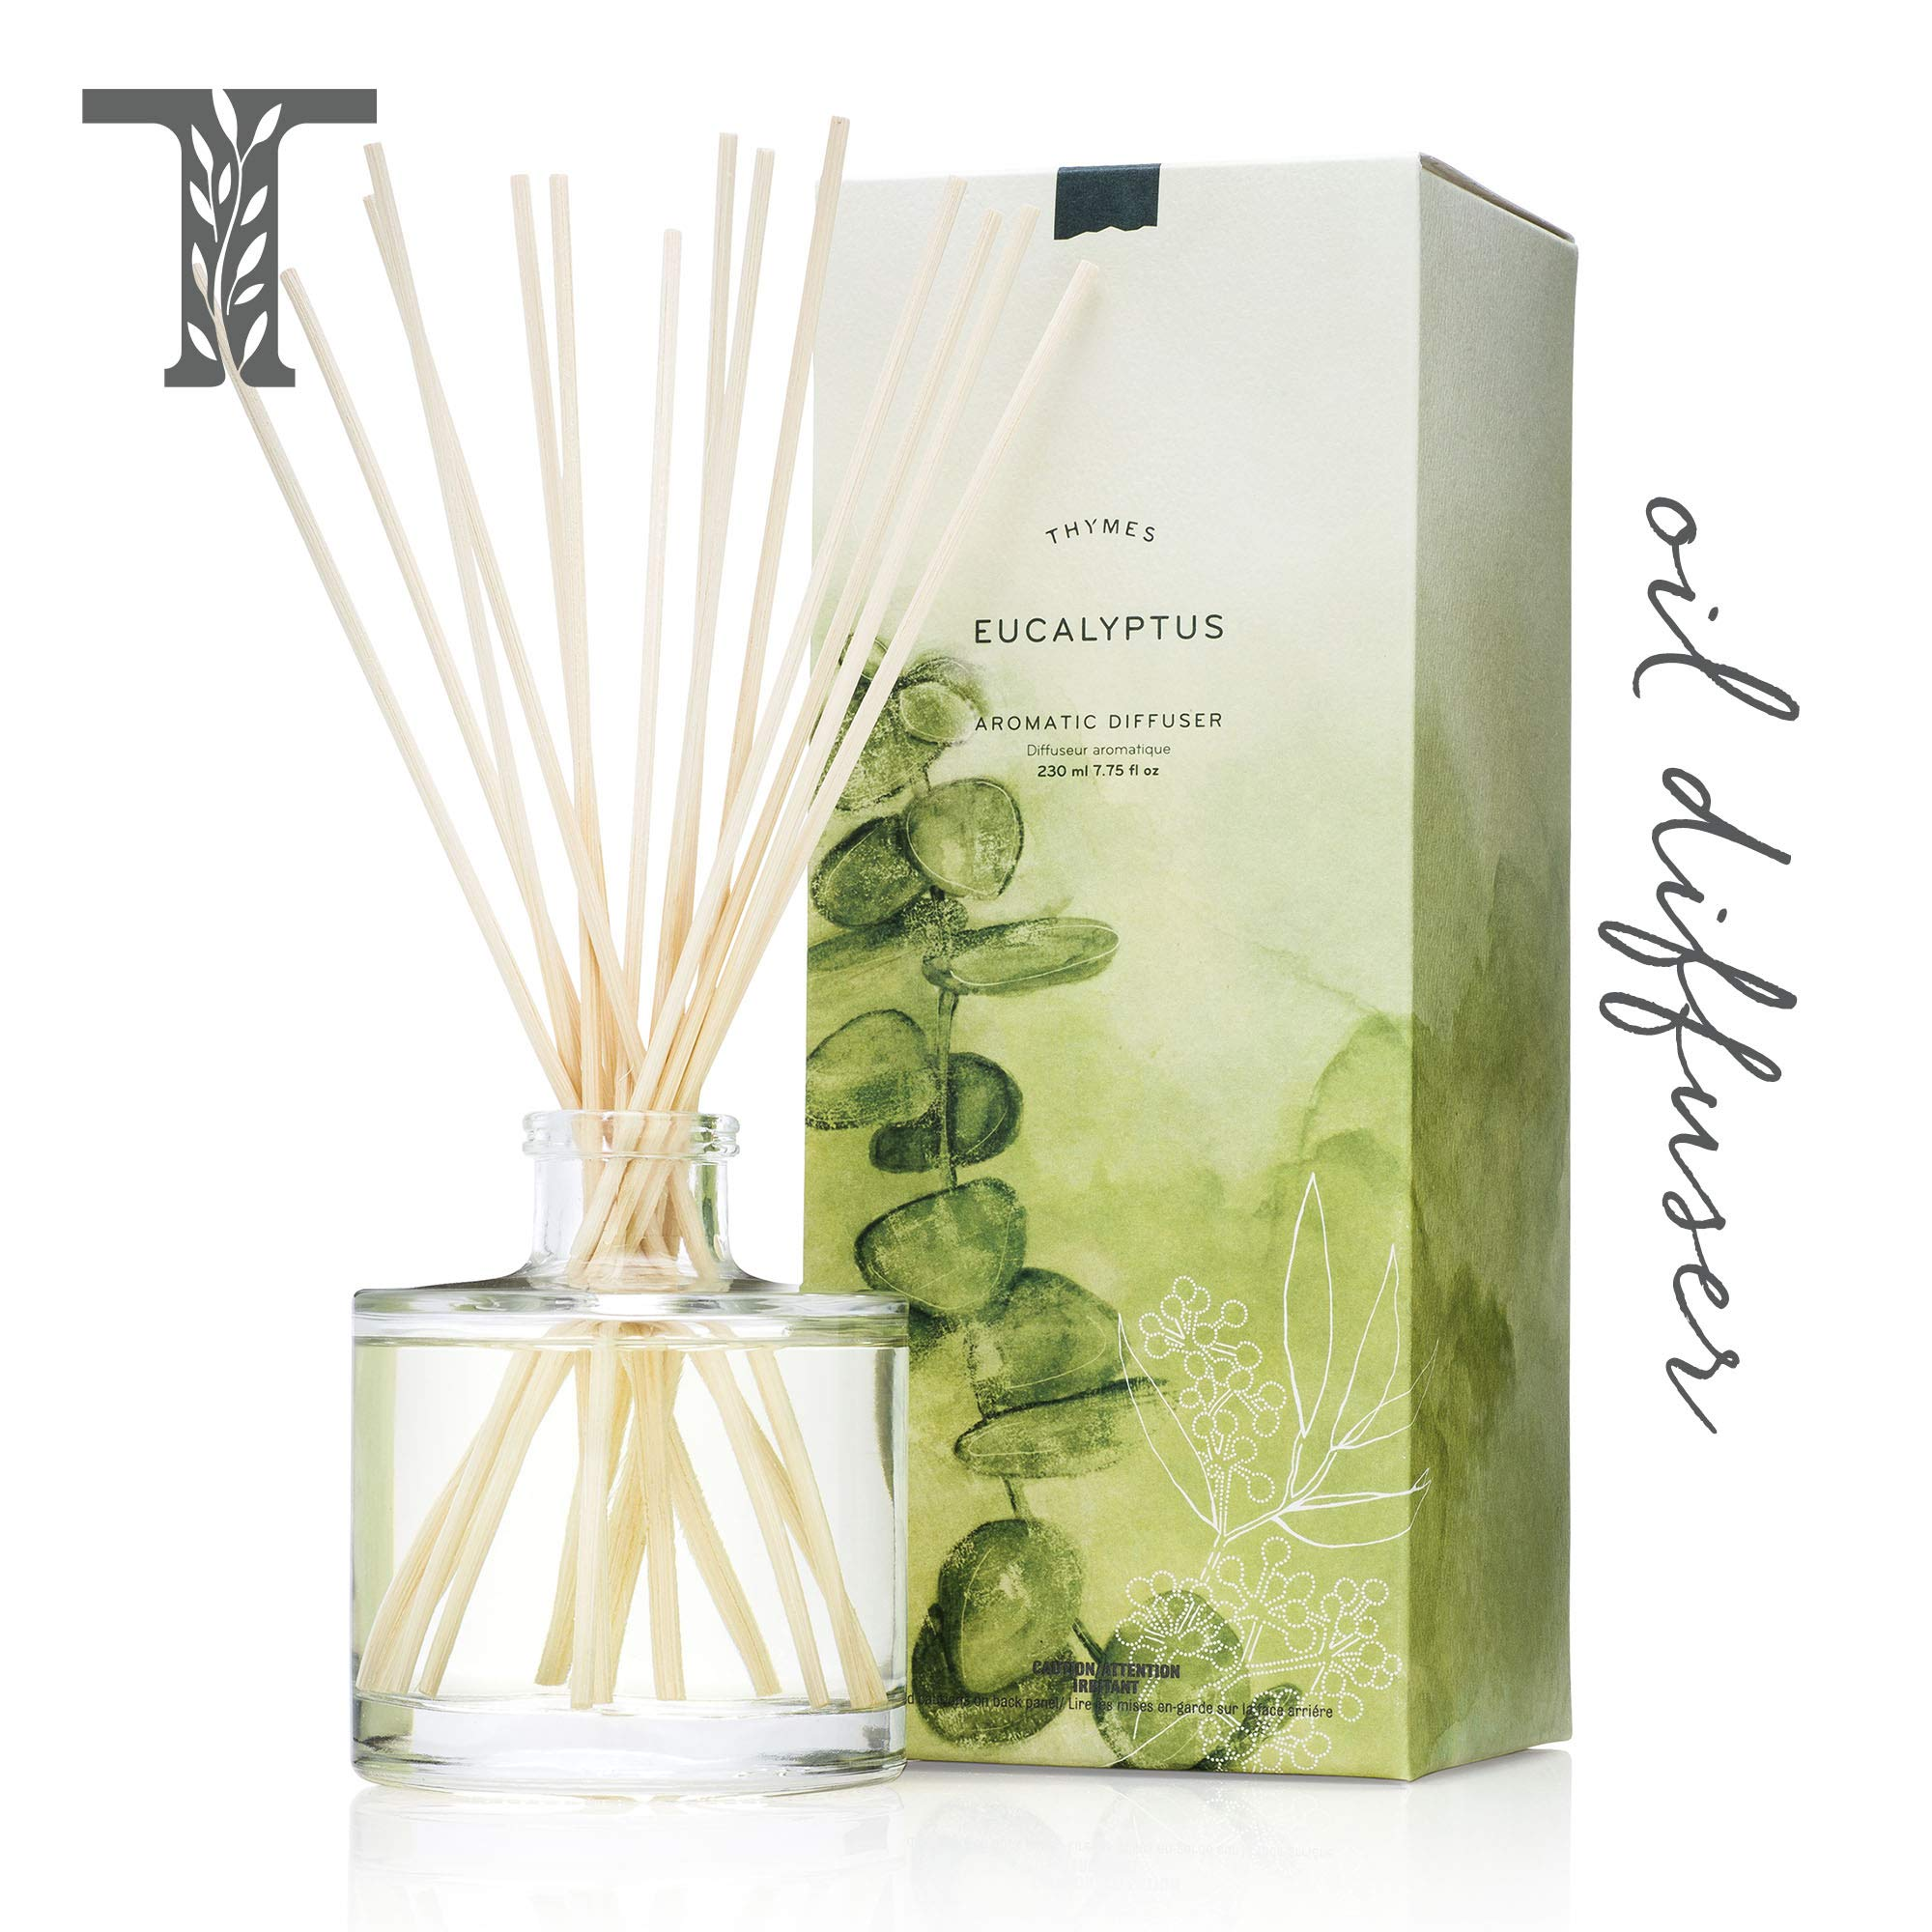 Thymes - Eucalyptus Aromatic Oil Reed Diffuser - Gift Set with Premium Sticks, Glass Bottle and Scented Oil - 6.5 oz by Thymes